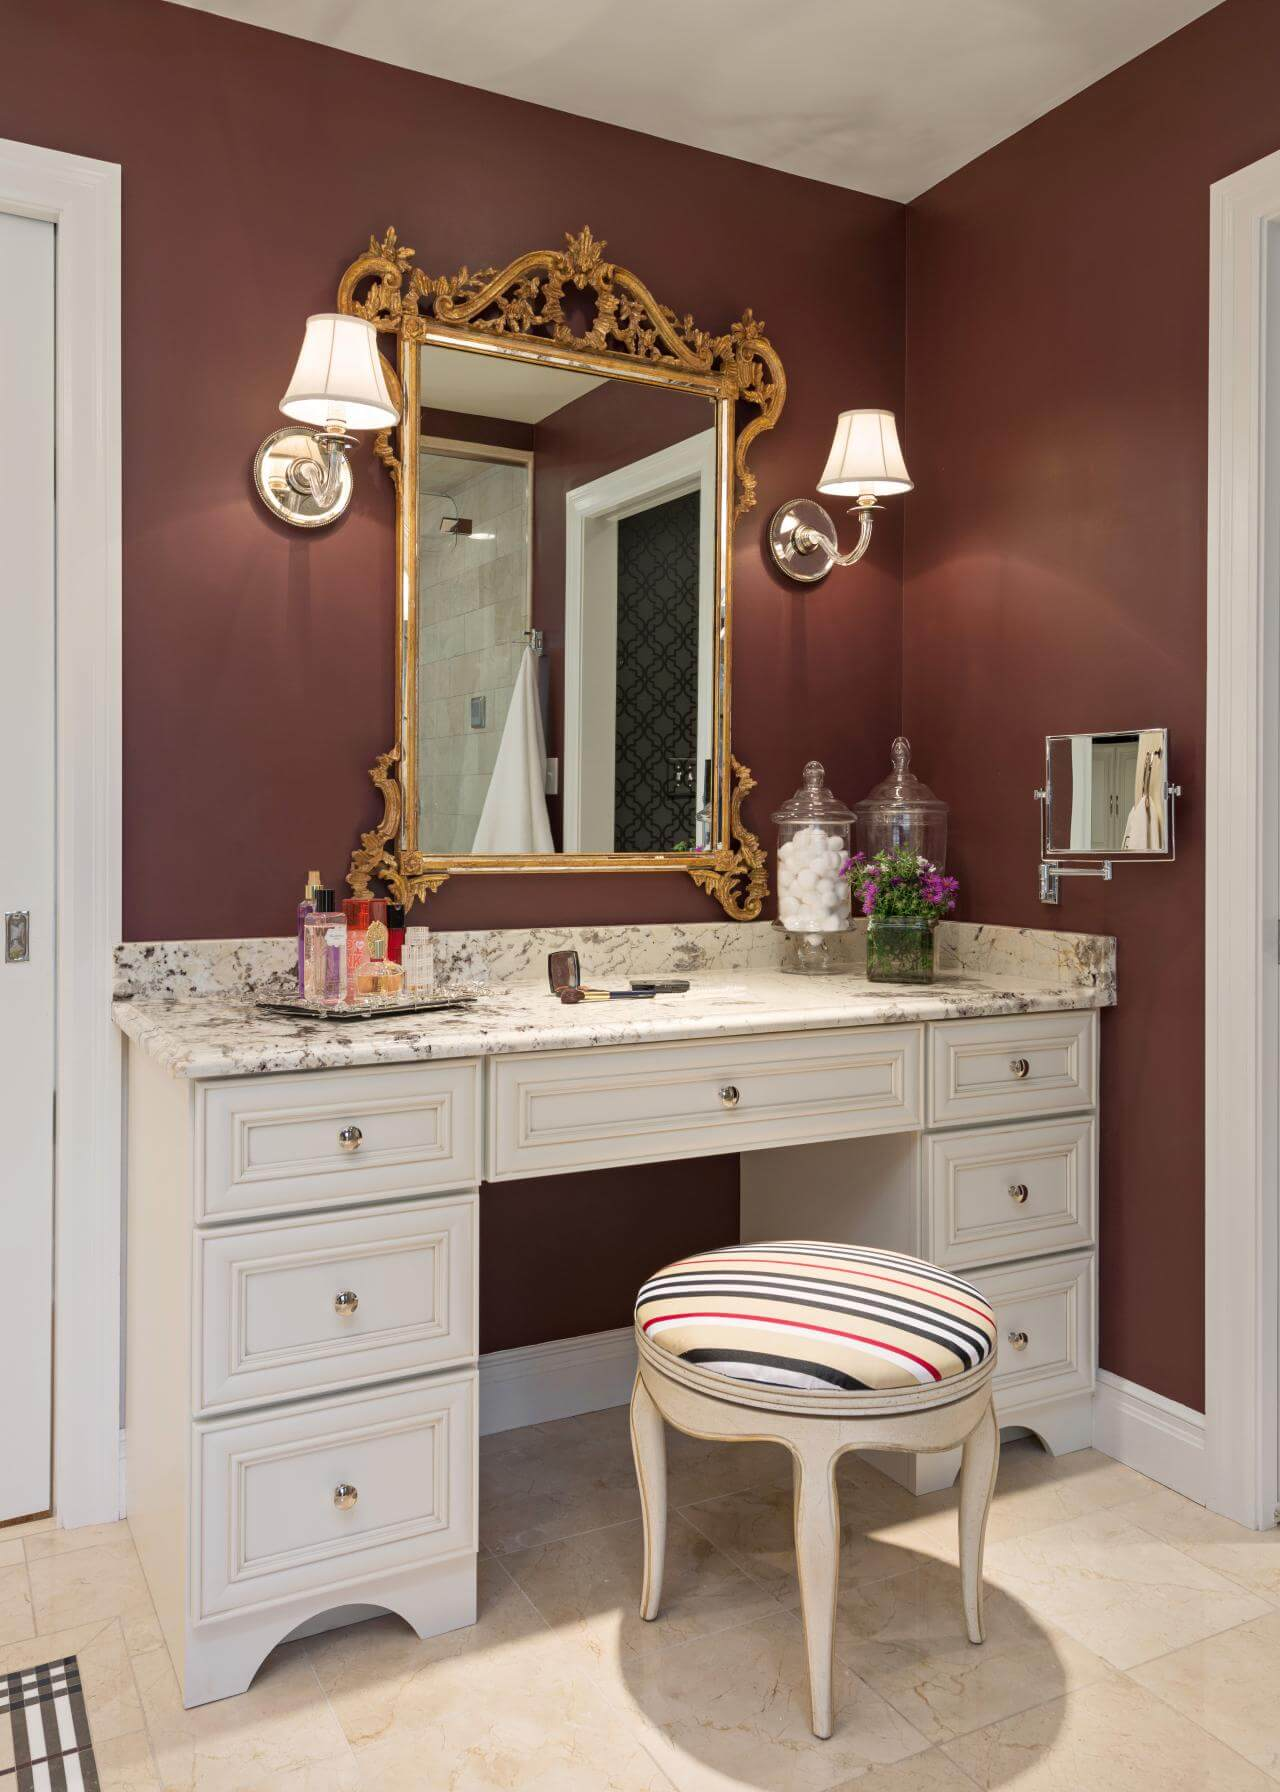 Charmant Marble Topped Vanity With Baroque Style Mirror